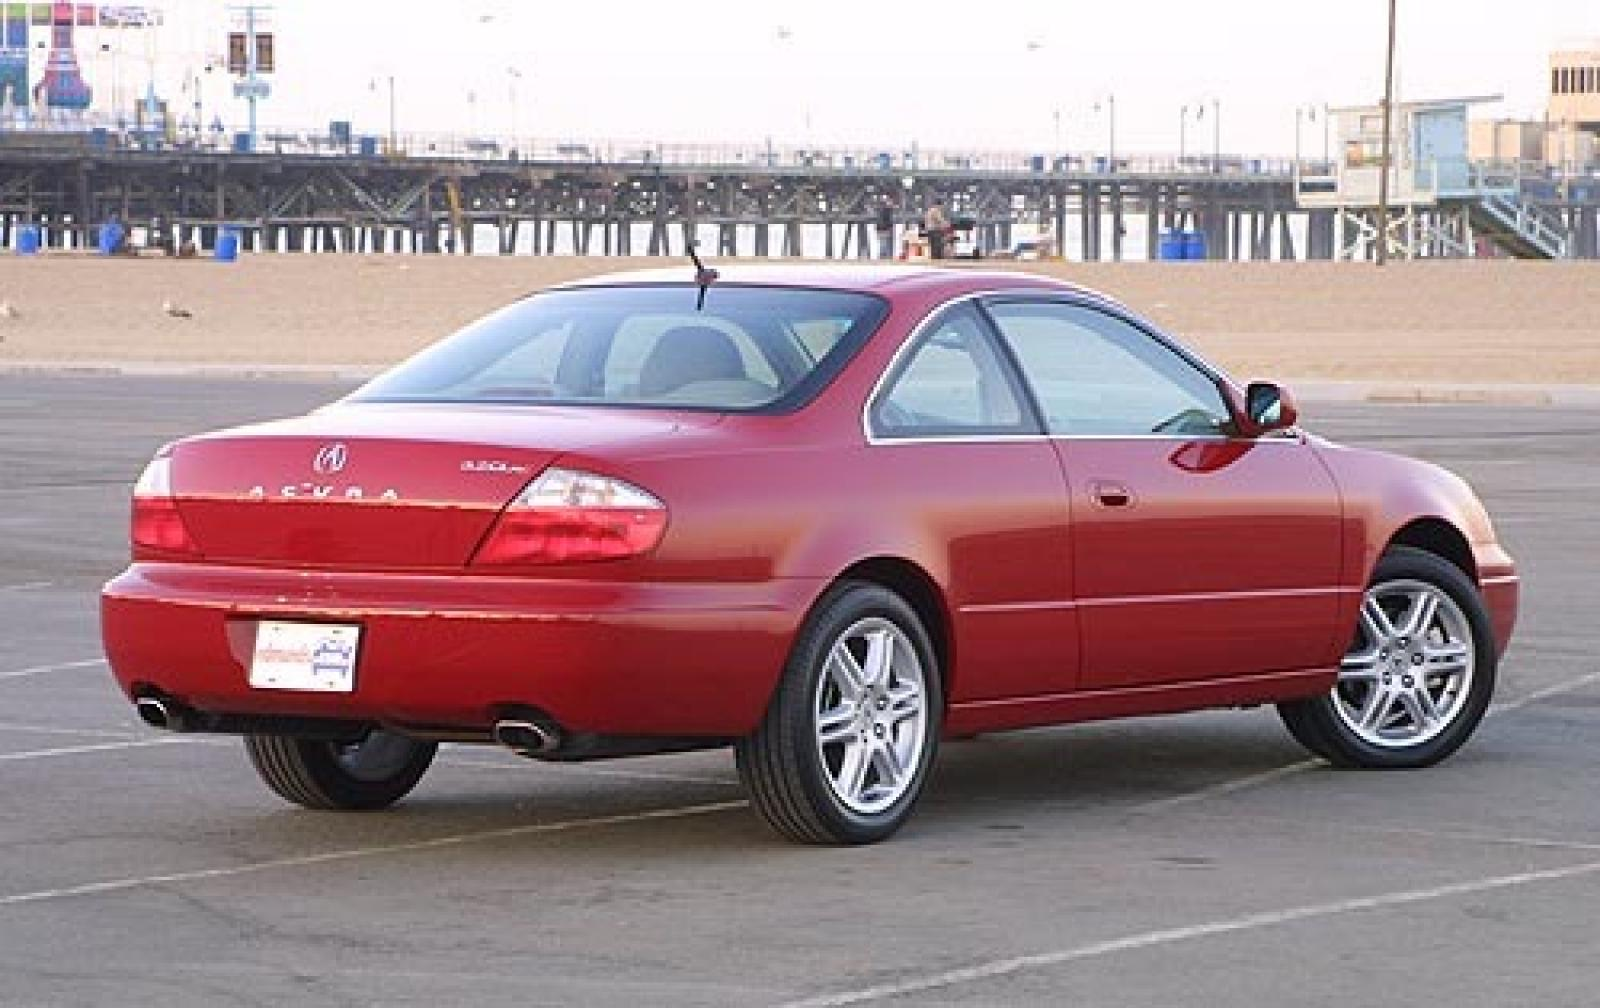 Acura CL Information And Photos ZombieDrive - 2003 acura cl for sale